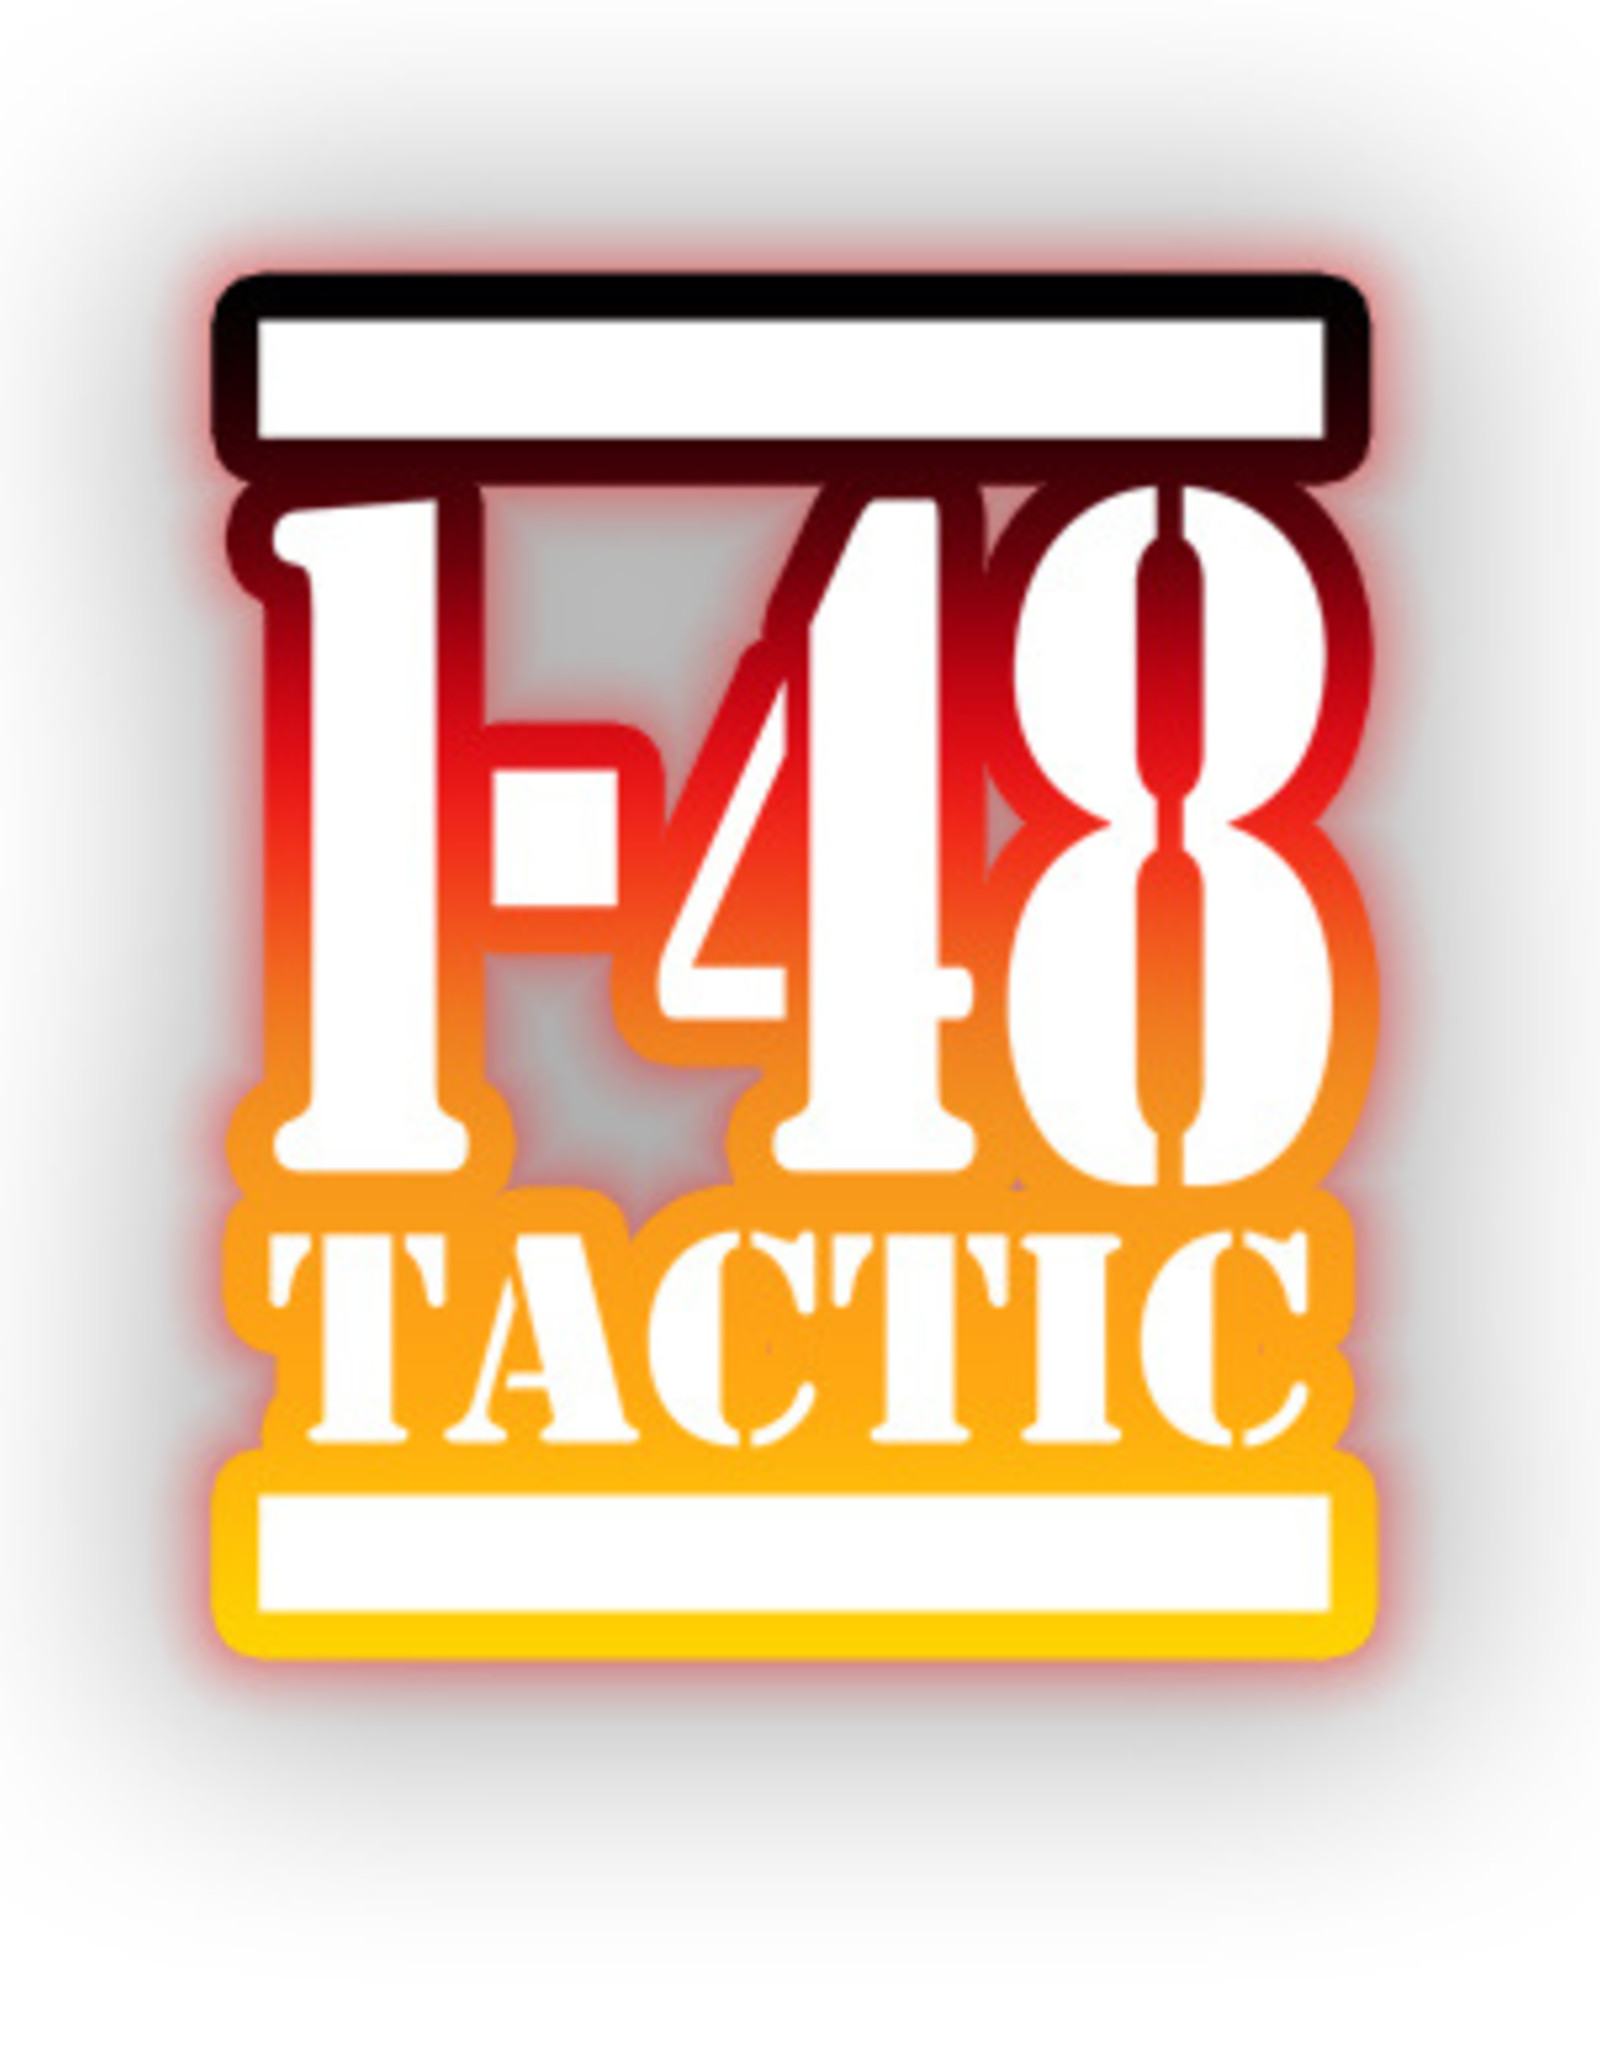 Baueda 1-48 Tactic rule book